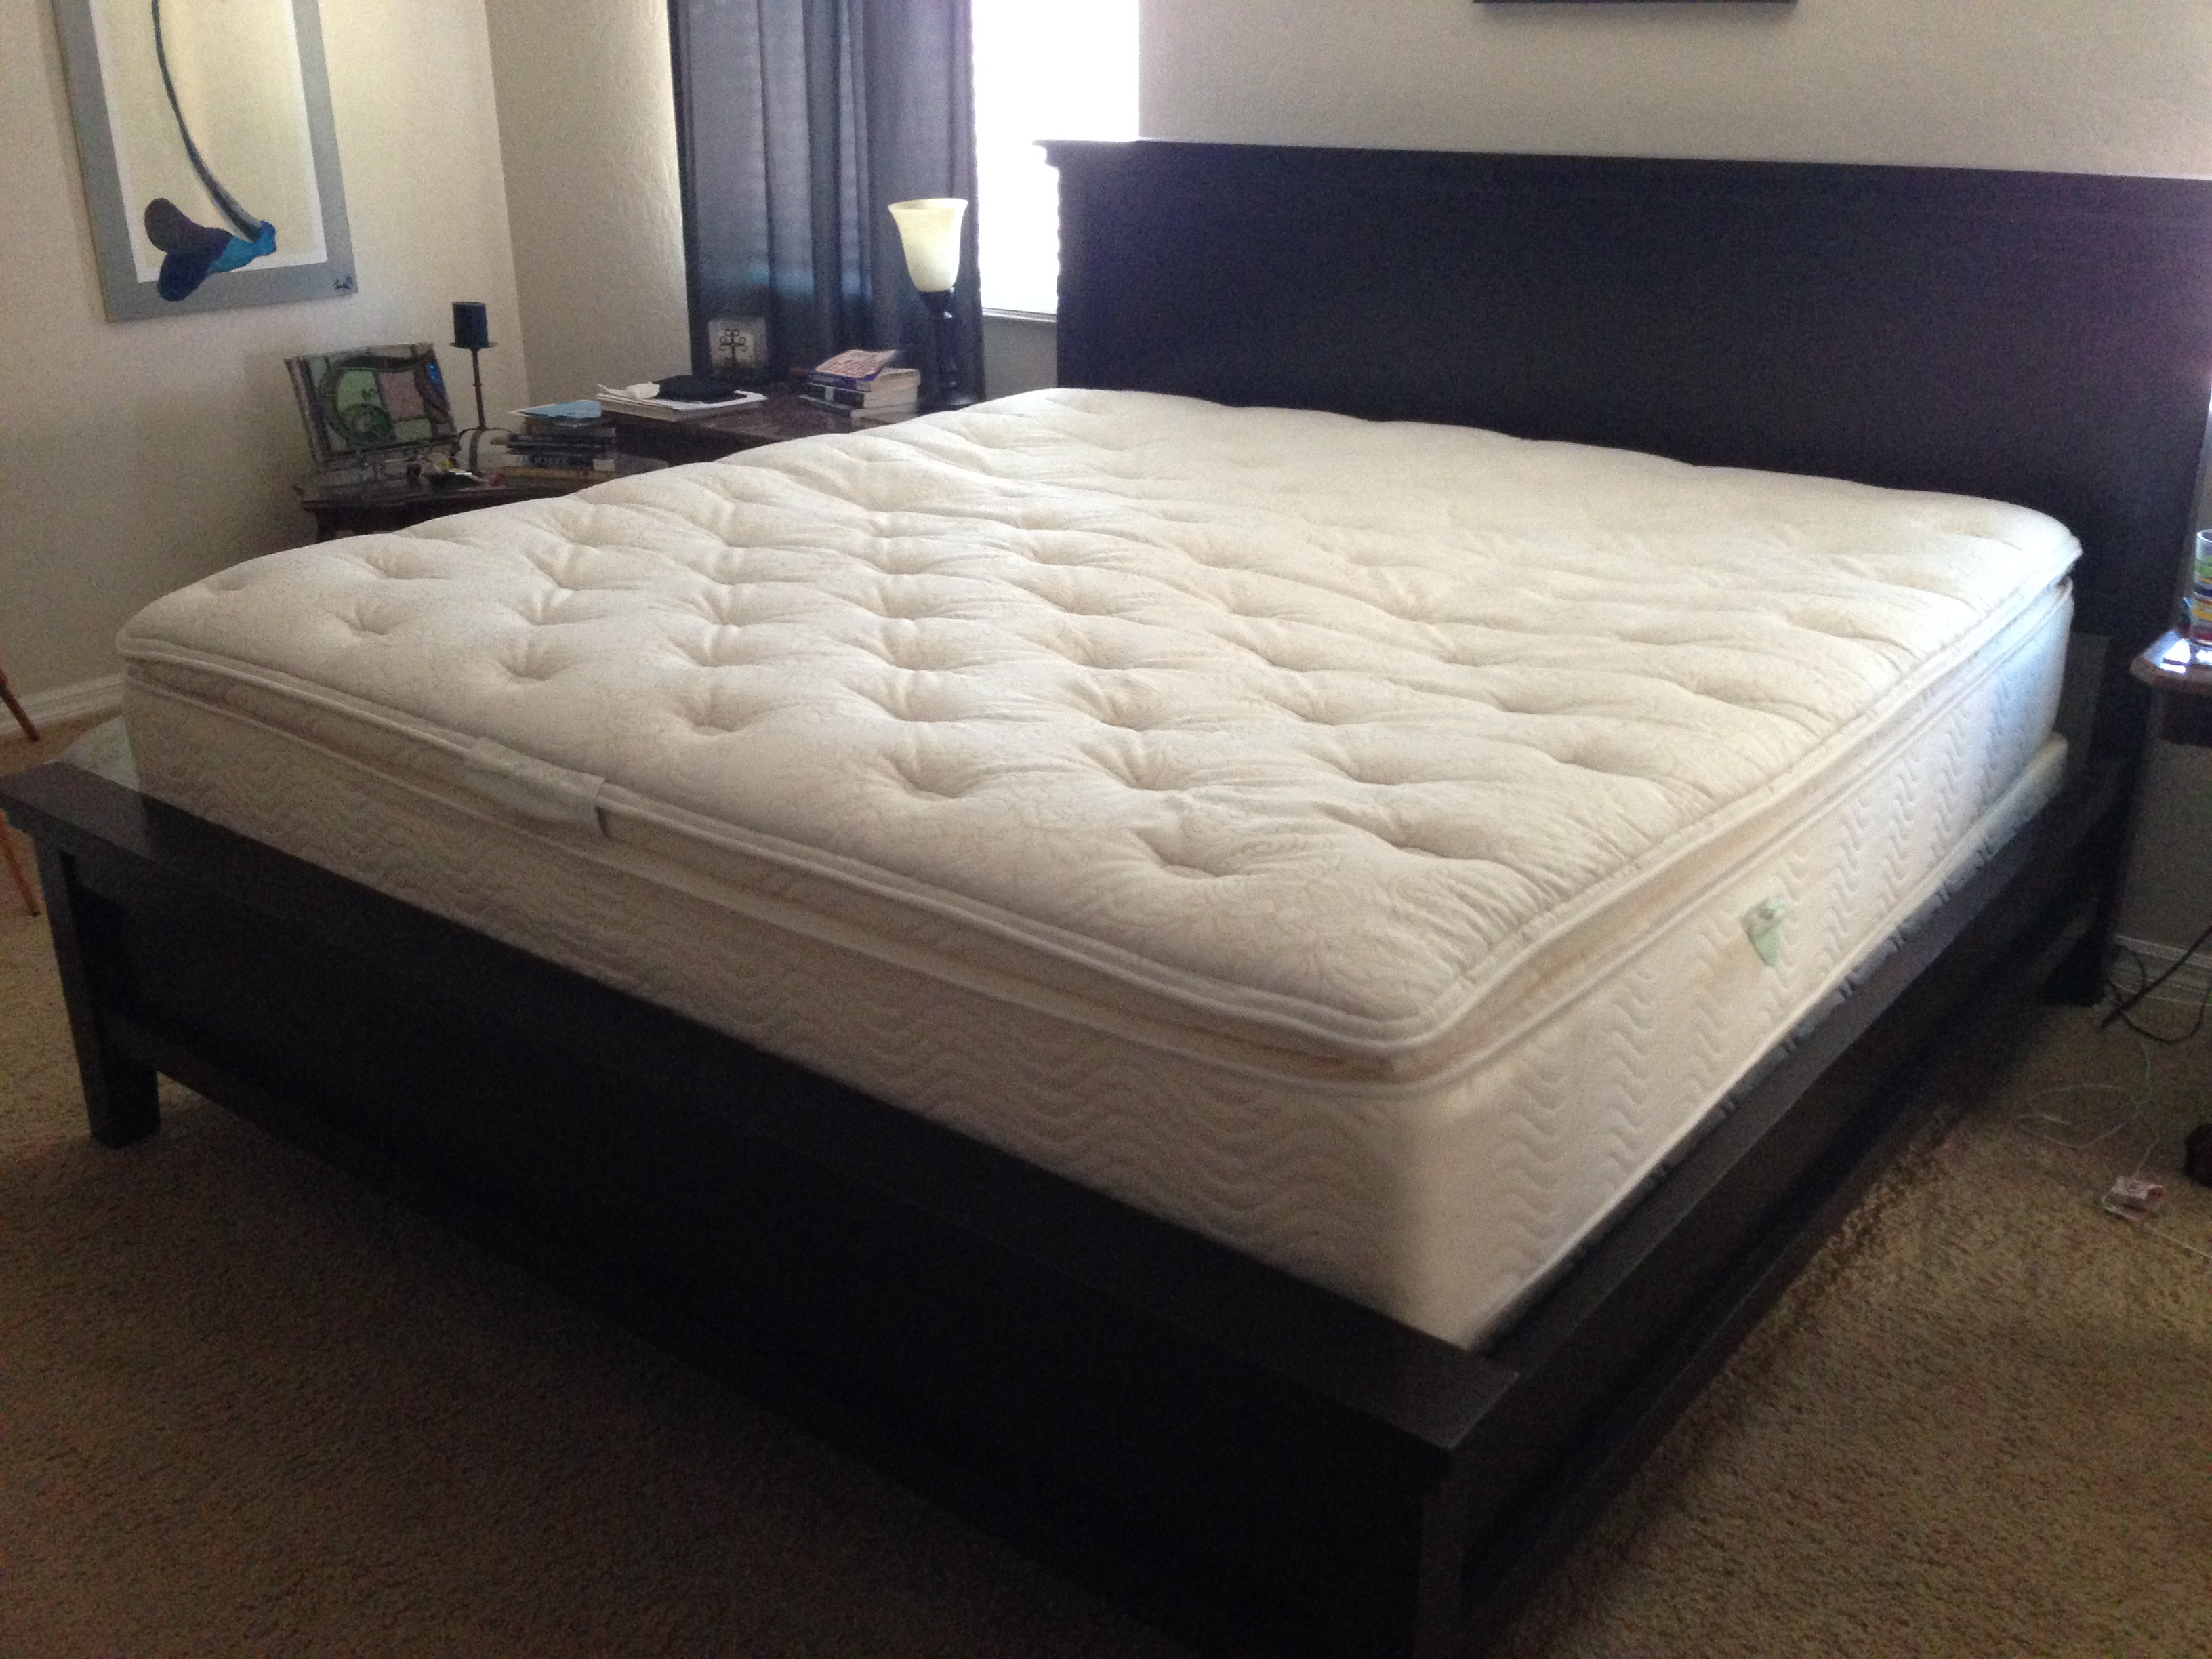 Costco 14 primifina novaform gel memory foam mattress for Average lifespan of a mattress